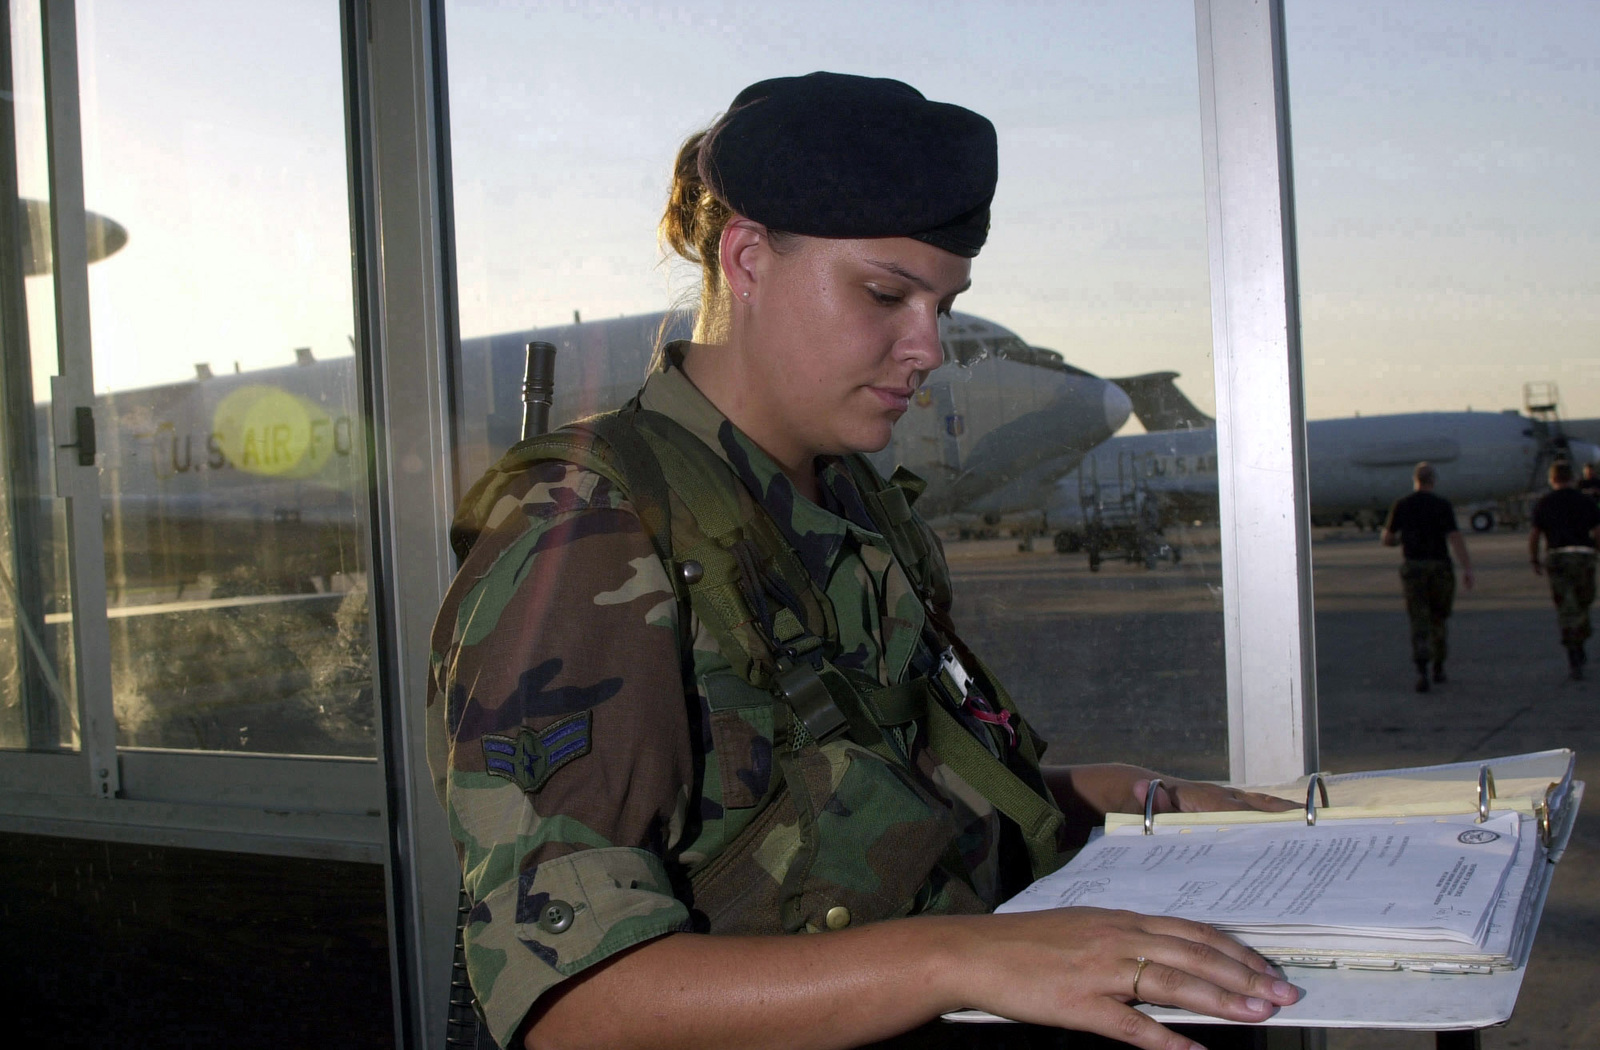 US Air Force (USAF) AIRMAN First Class (A1C) Shelly Byers, 325th Security Forces Squadron (SFS), reviews an entry authorization list at the entry control point to the flight line, while deployed at Incirlik Air Base (AB), Turkey, in support of Operation NORTHERN WATCH